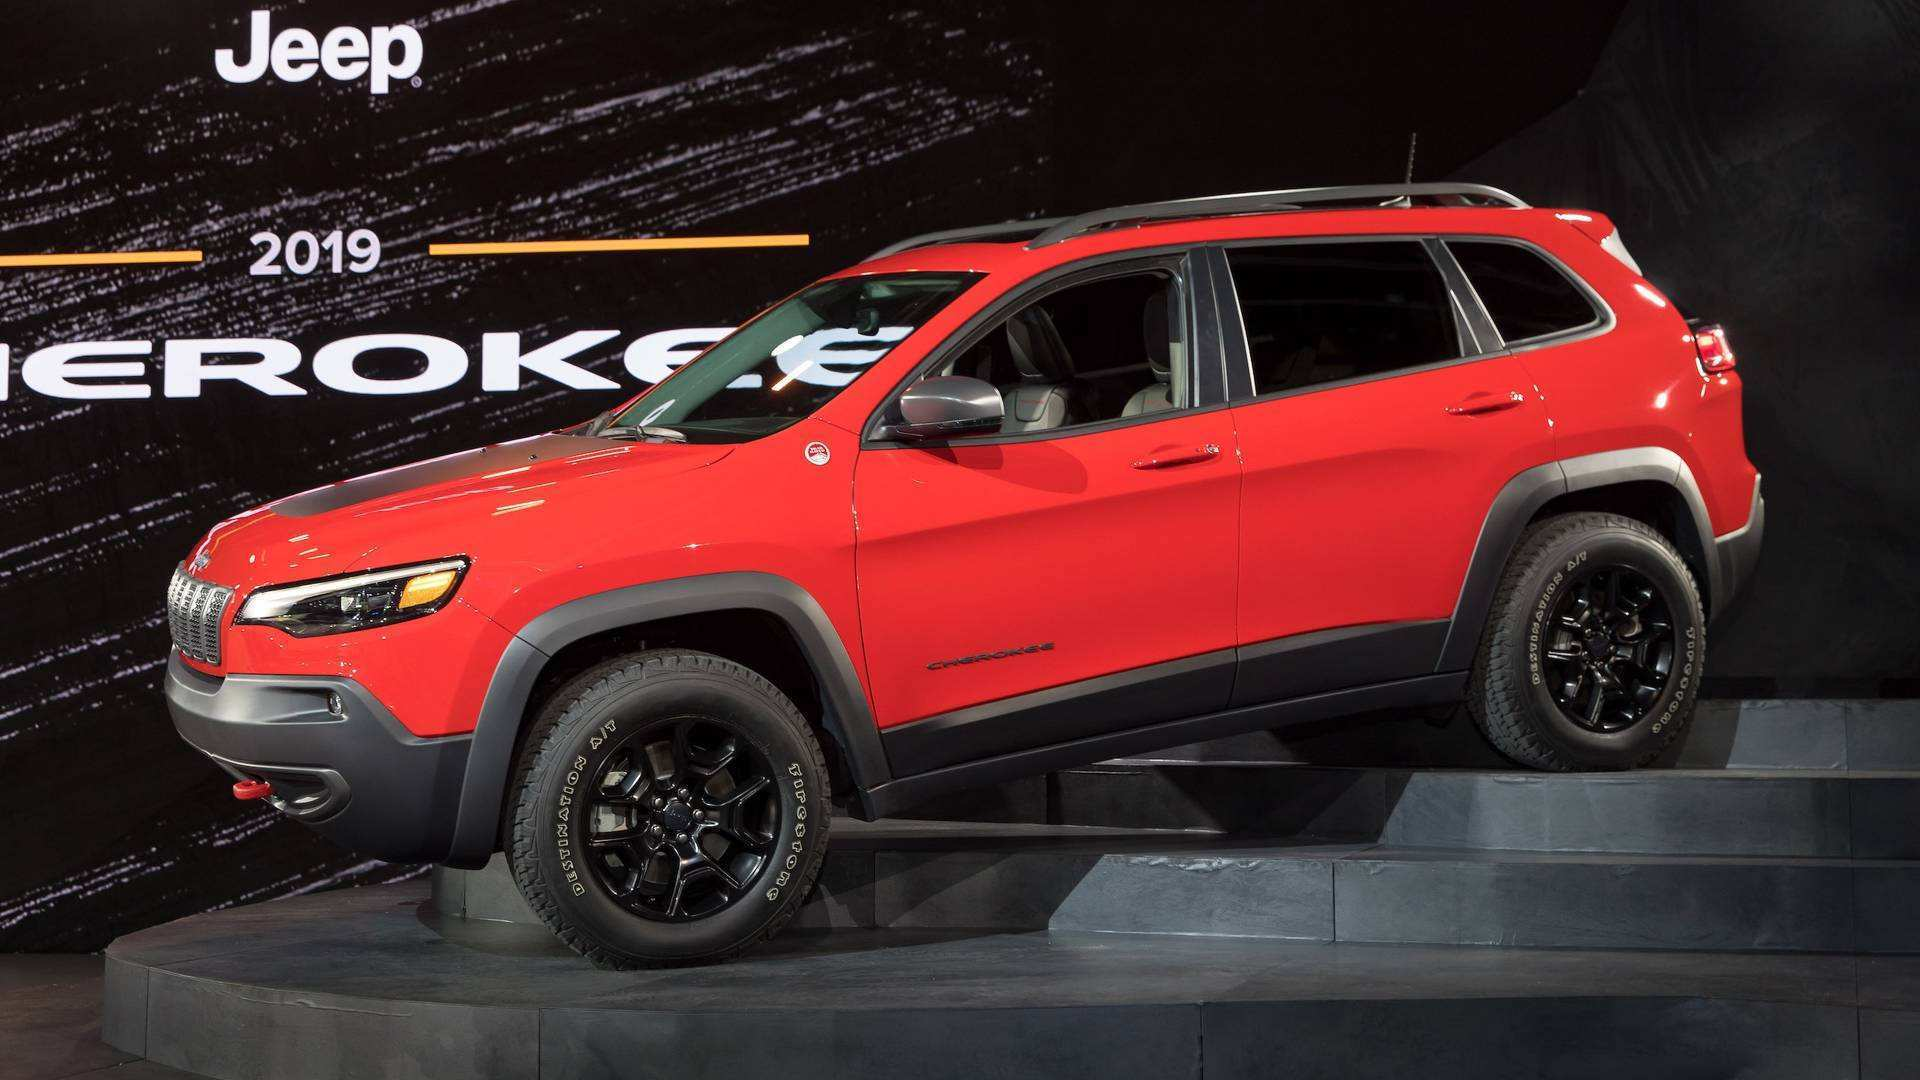 65 All New Best Cherokee Jeep 2019 Redesign And Concept Redesign with Best Cherokee Jeep 2019 Redesign And Concept